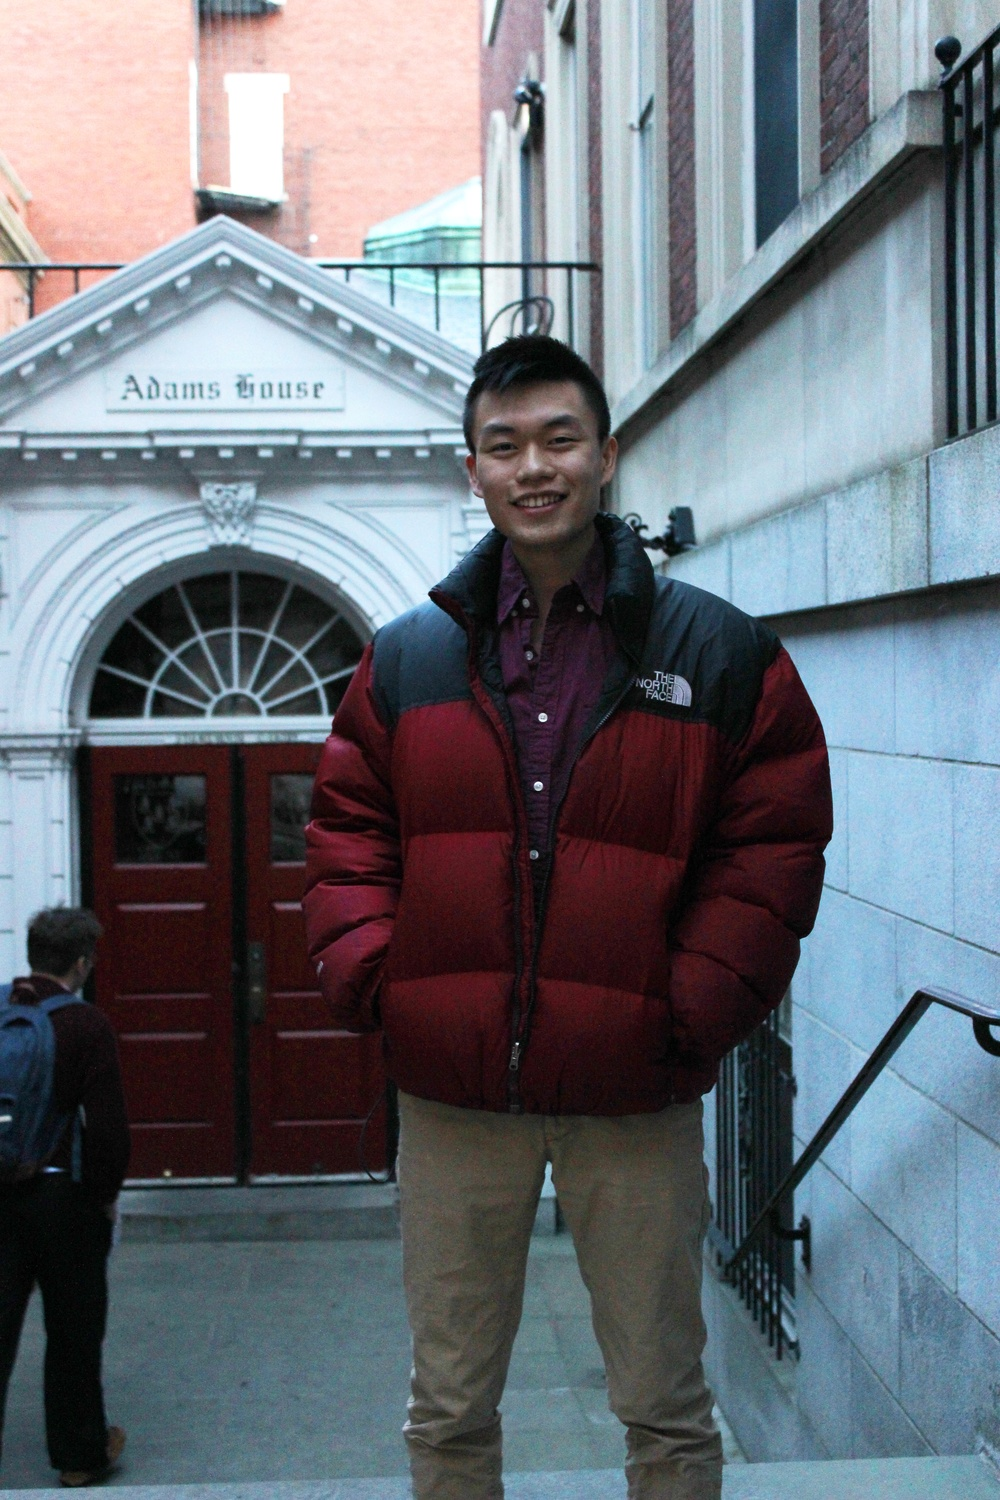 Former UC representative Kevin Liang '16 waits outside of Adams House on Monday afternoon. As a previous executive of multiple clubs, Liang often had to prioritize extracurricular activities over House events.